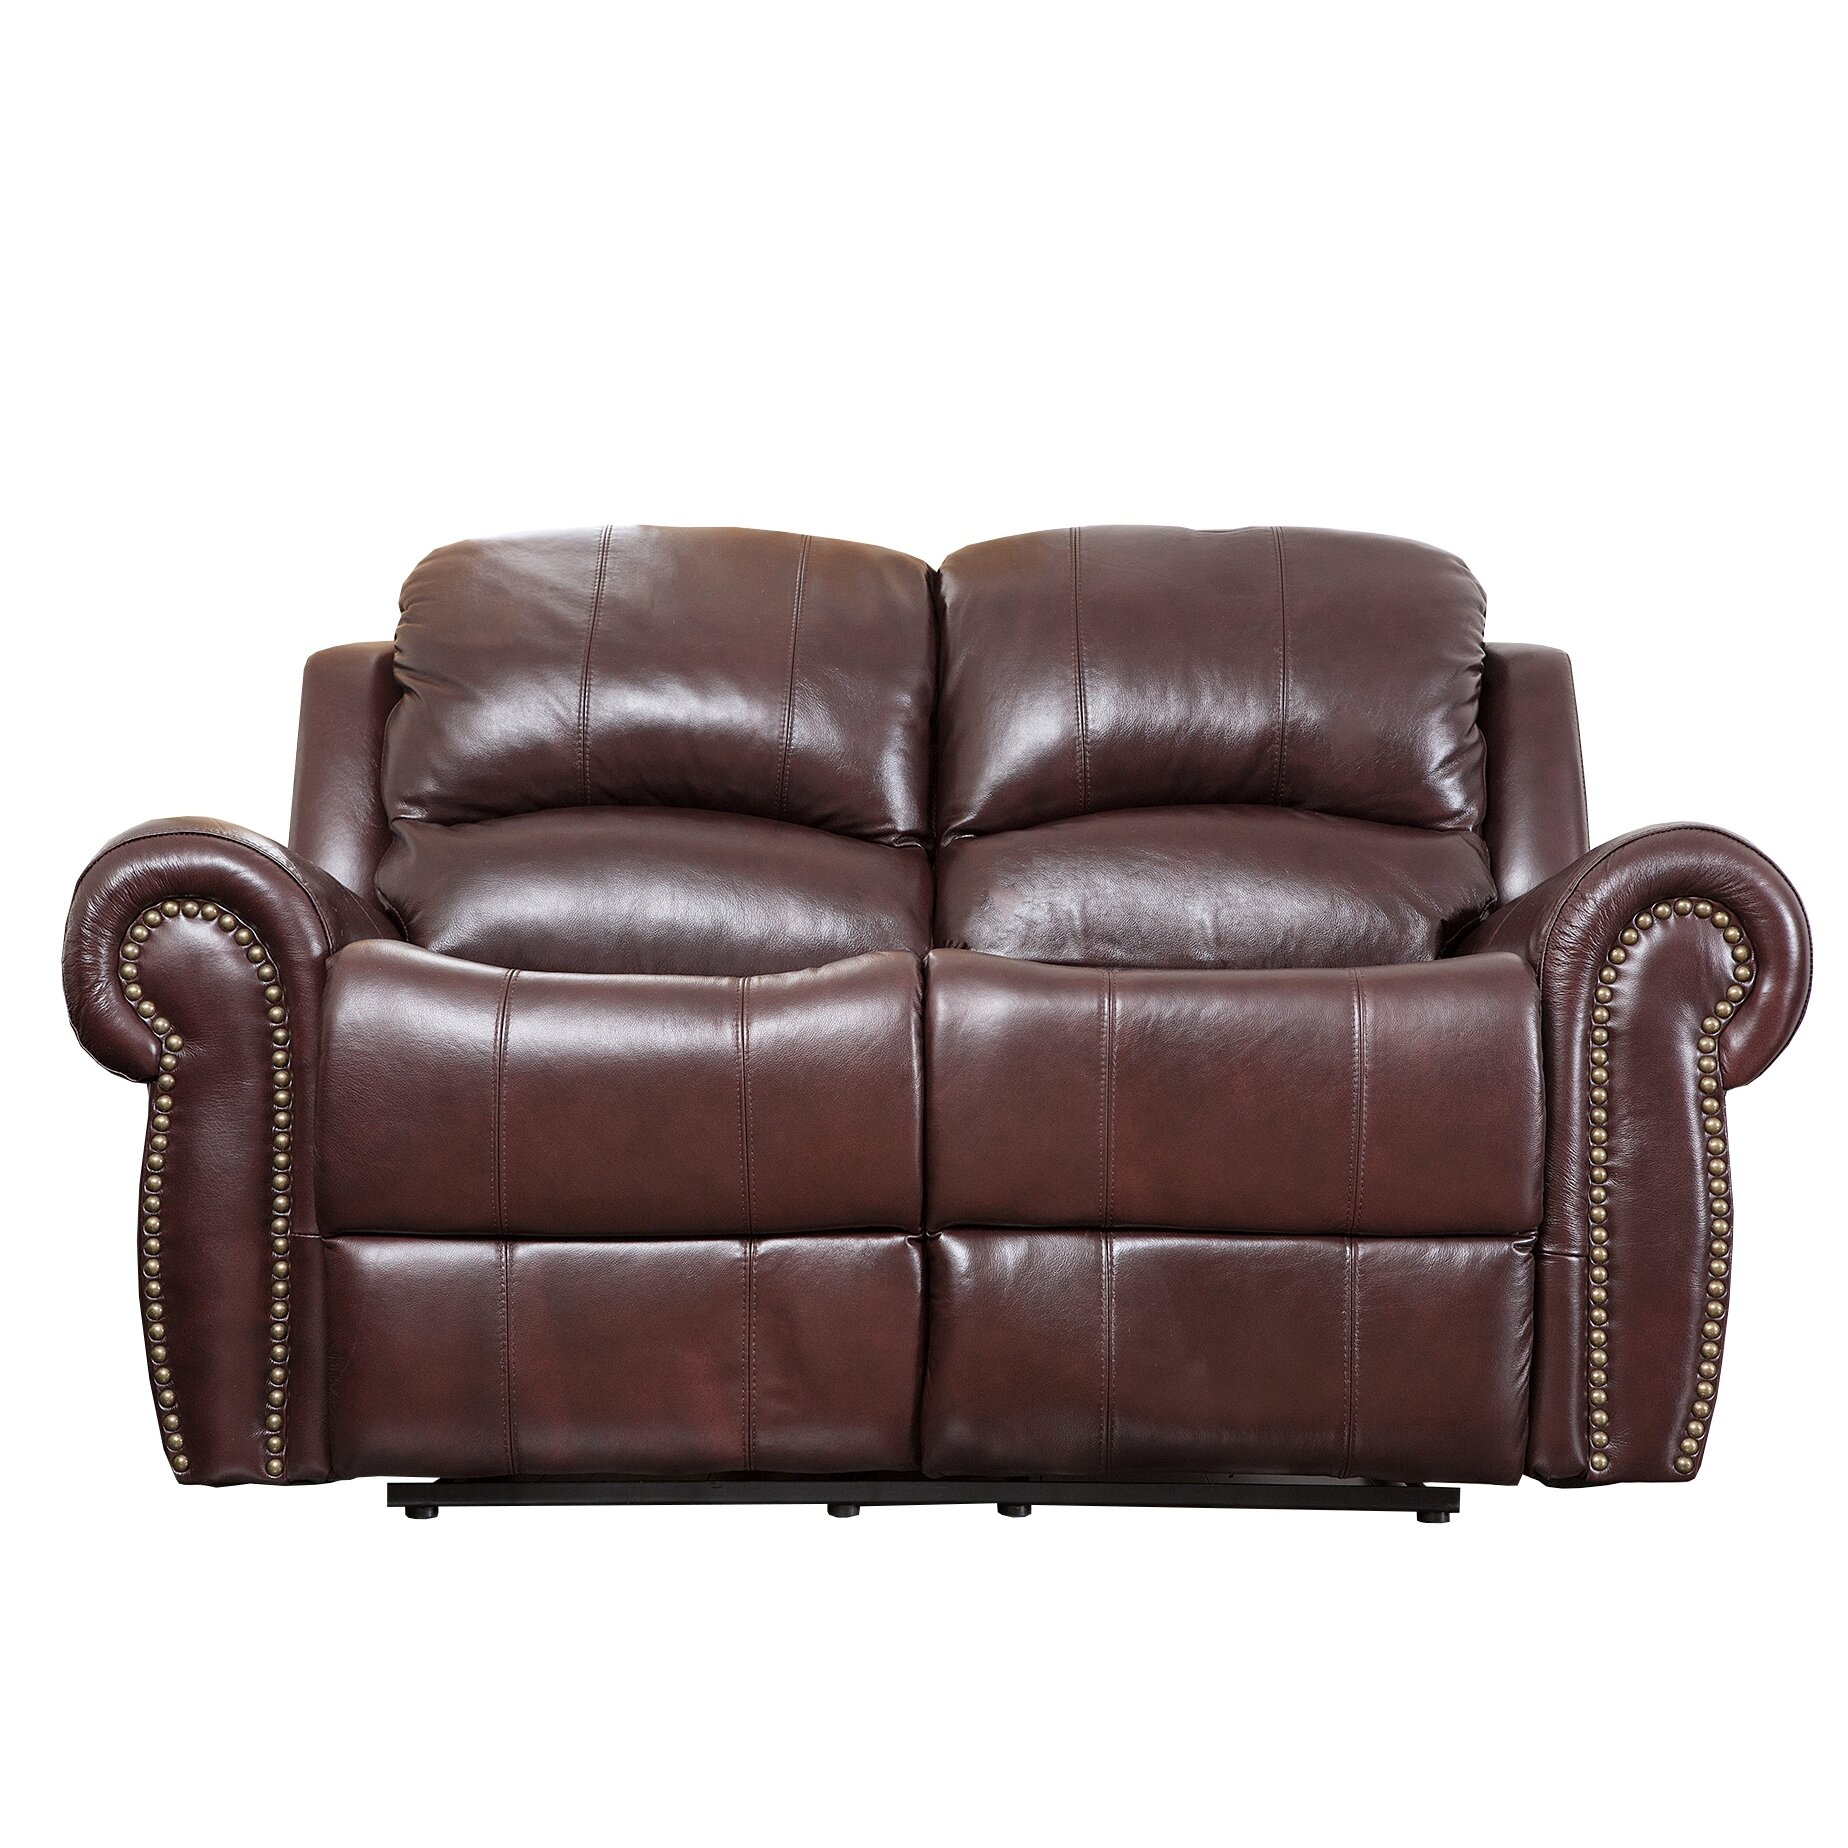 Abbyson living sedona leather reclining loveseat reviews wayfair Reclining loveseat sale